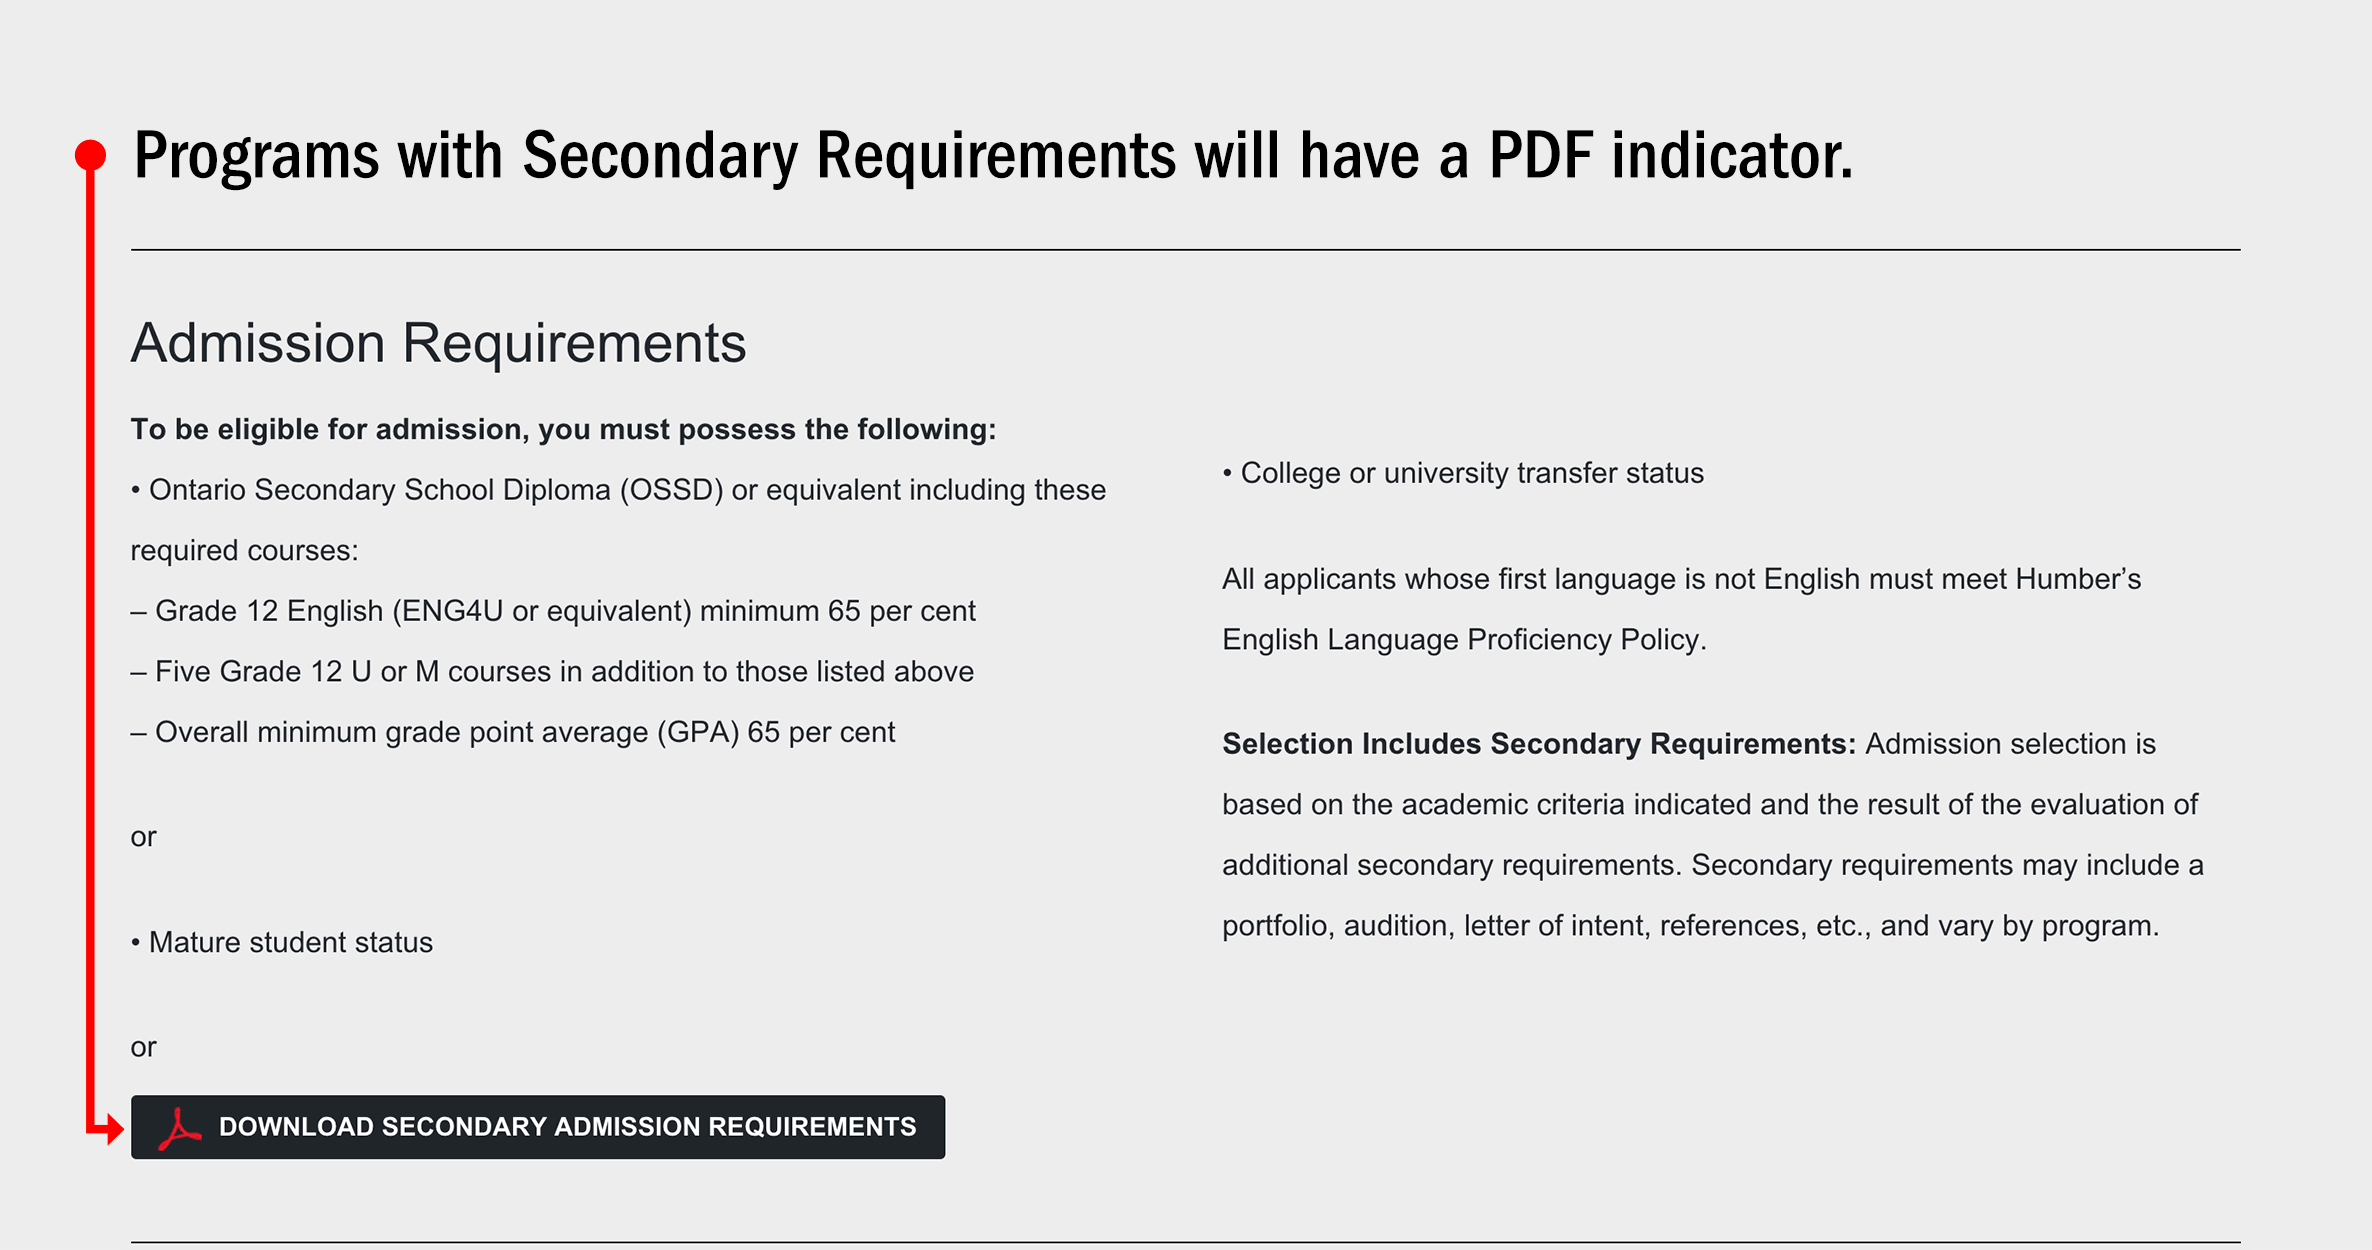 Secondary Requirements details are specified in the Admission Requirements section of the Program pages. Programs with Secondary Requirements will have a PDF indicator.